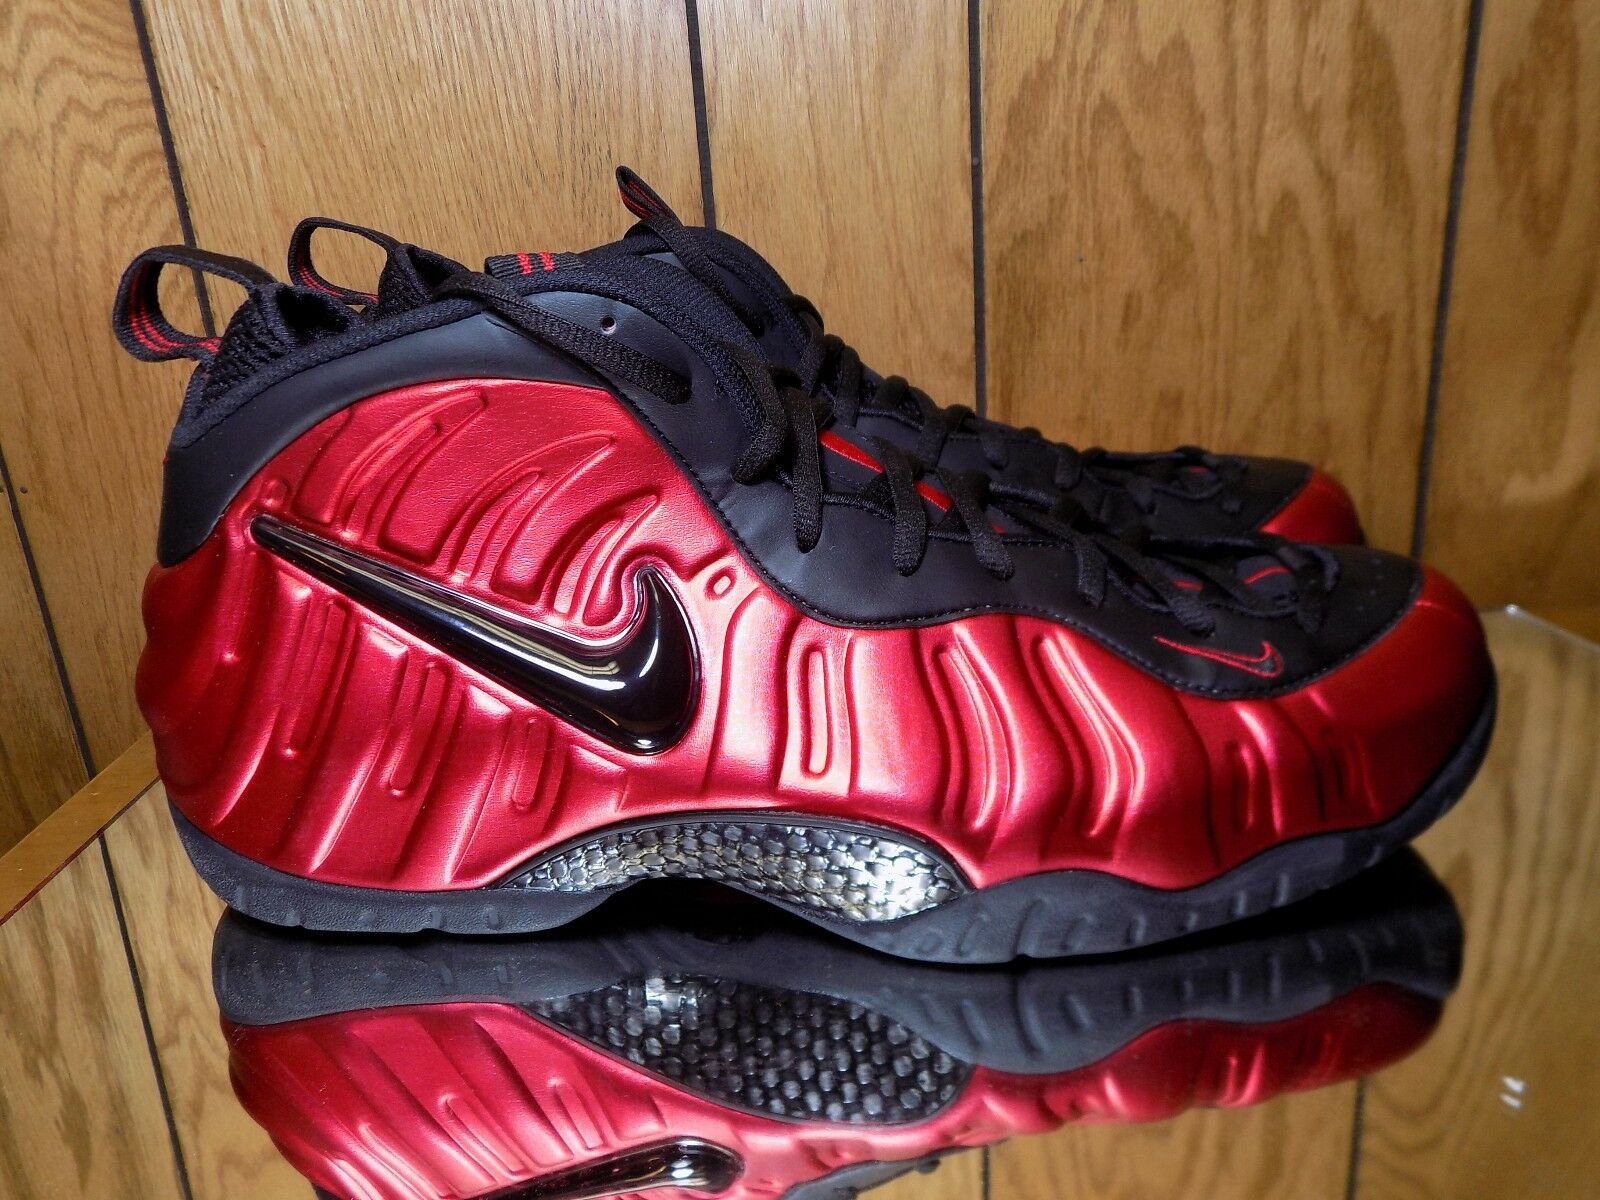 Nike Air Foamposite Pro Red Black 624041-604 Size 17 Brand New